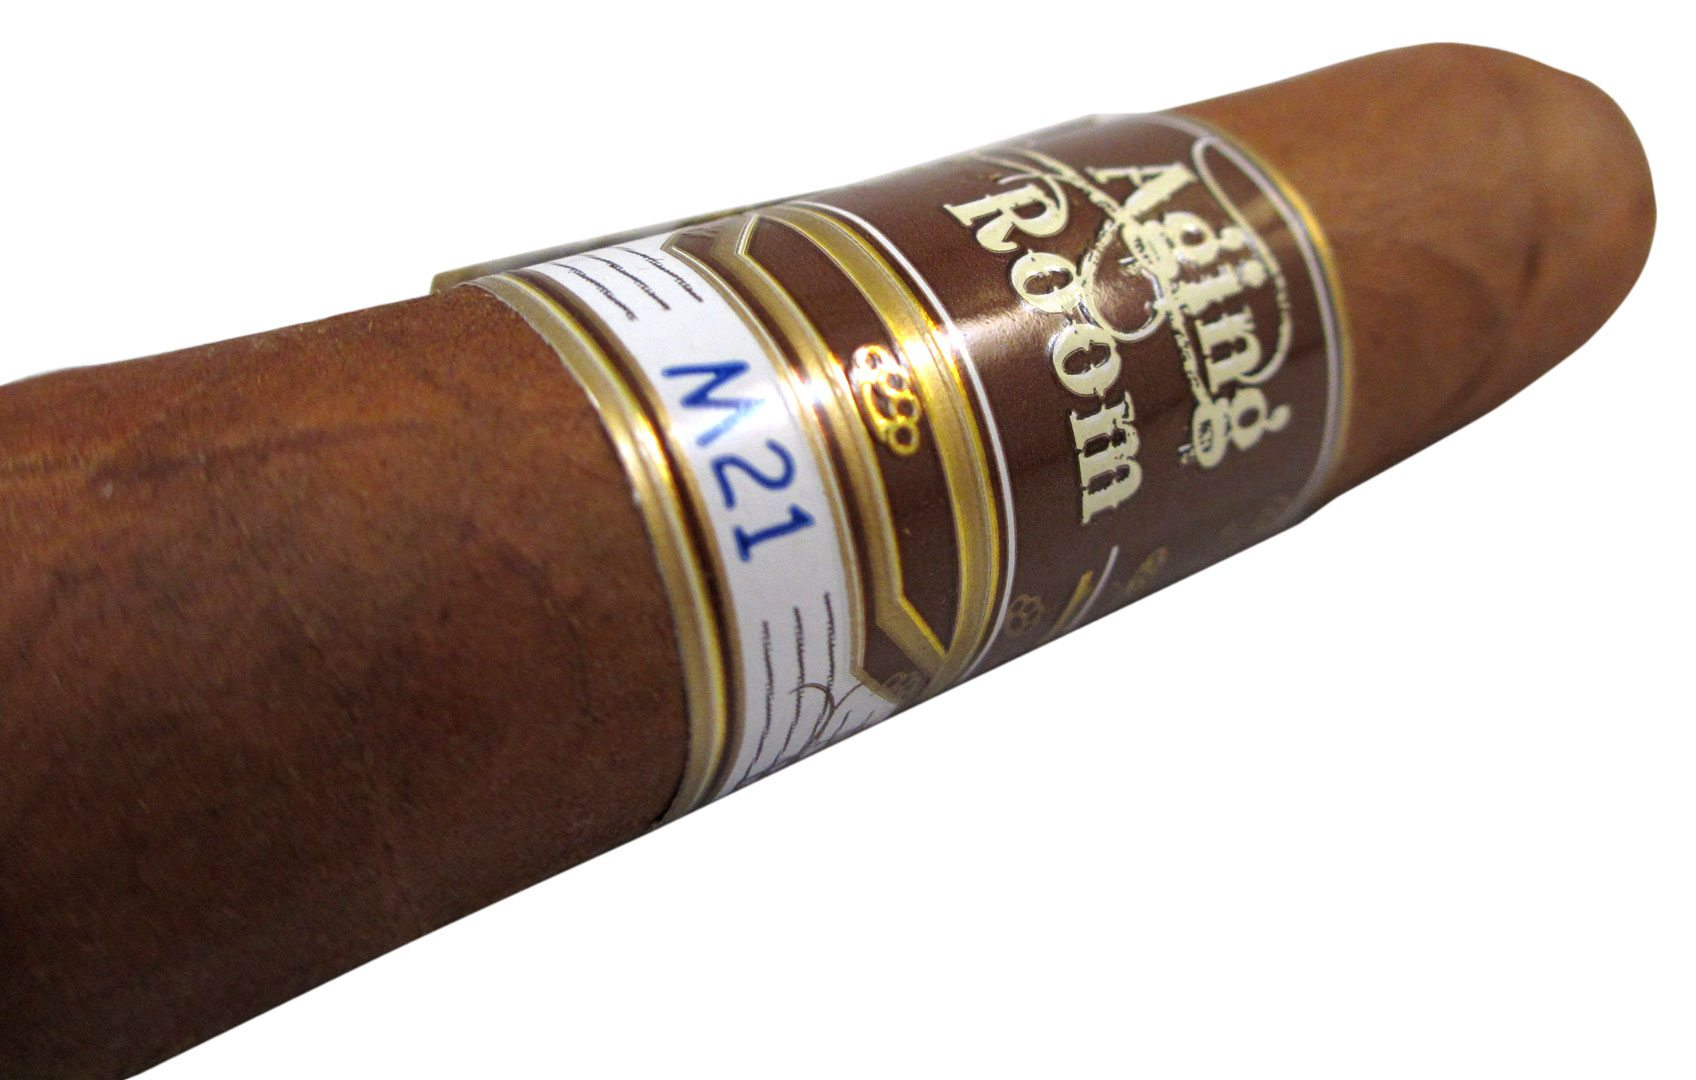 Blind Cigar Review: Aging Room | M21 Fortissimo